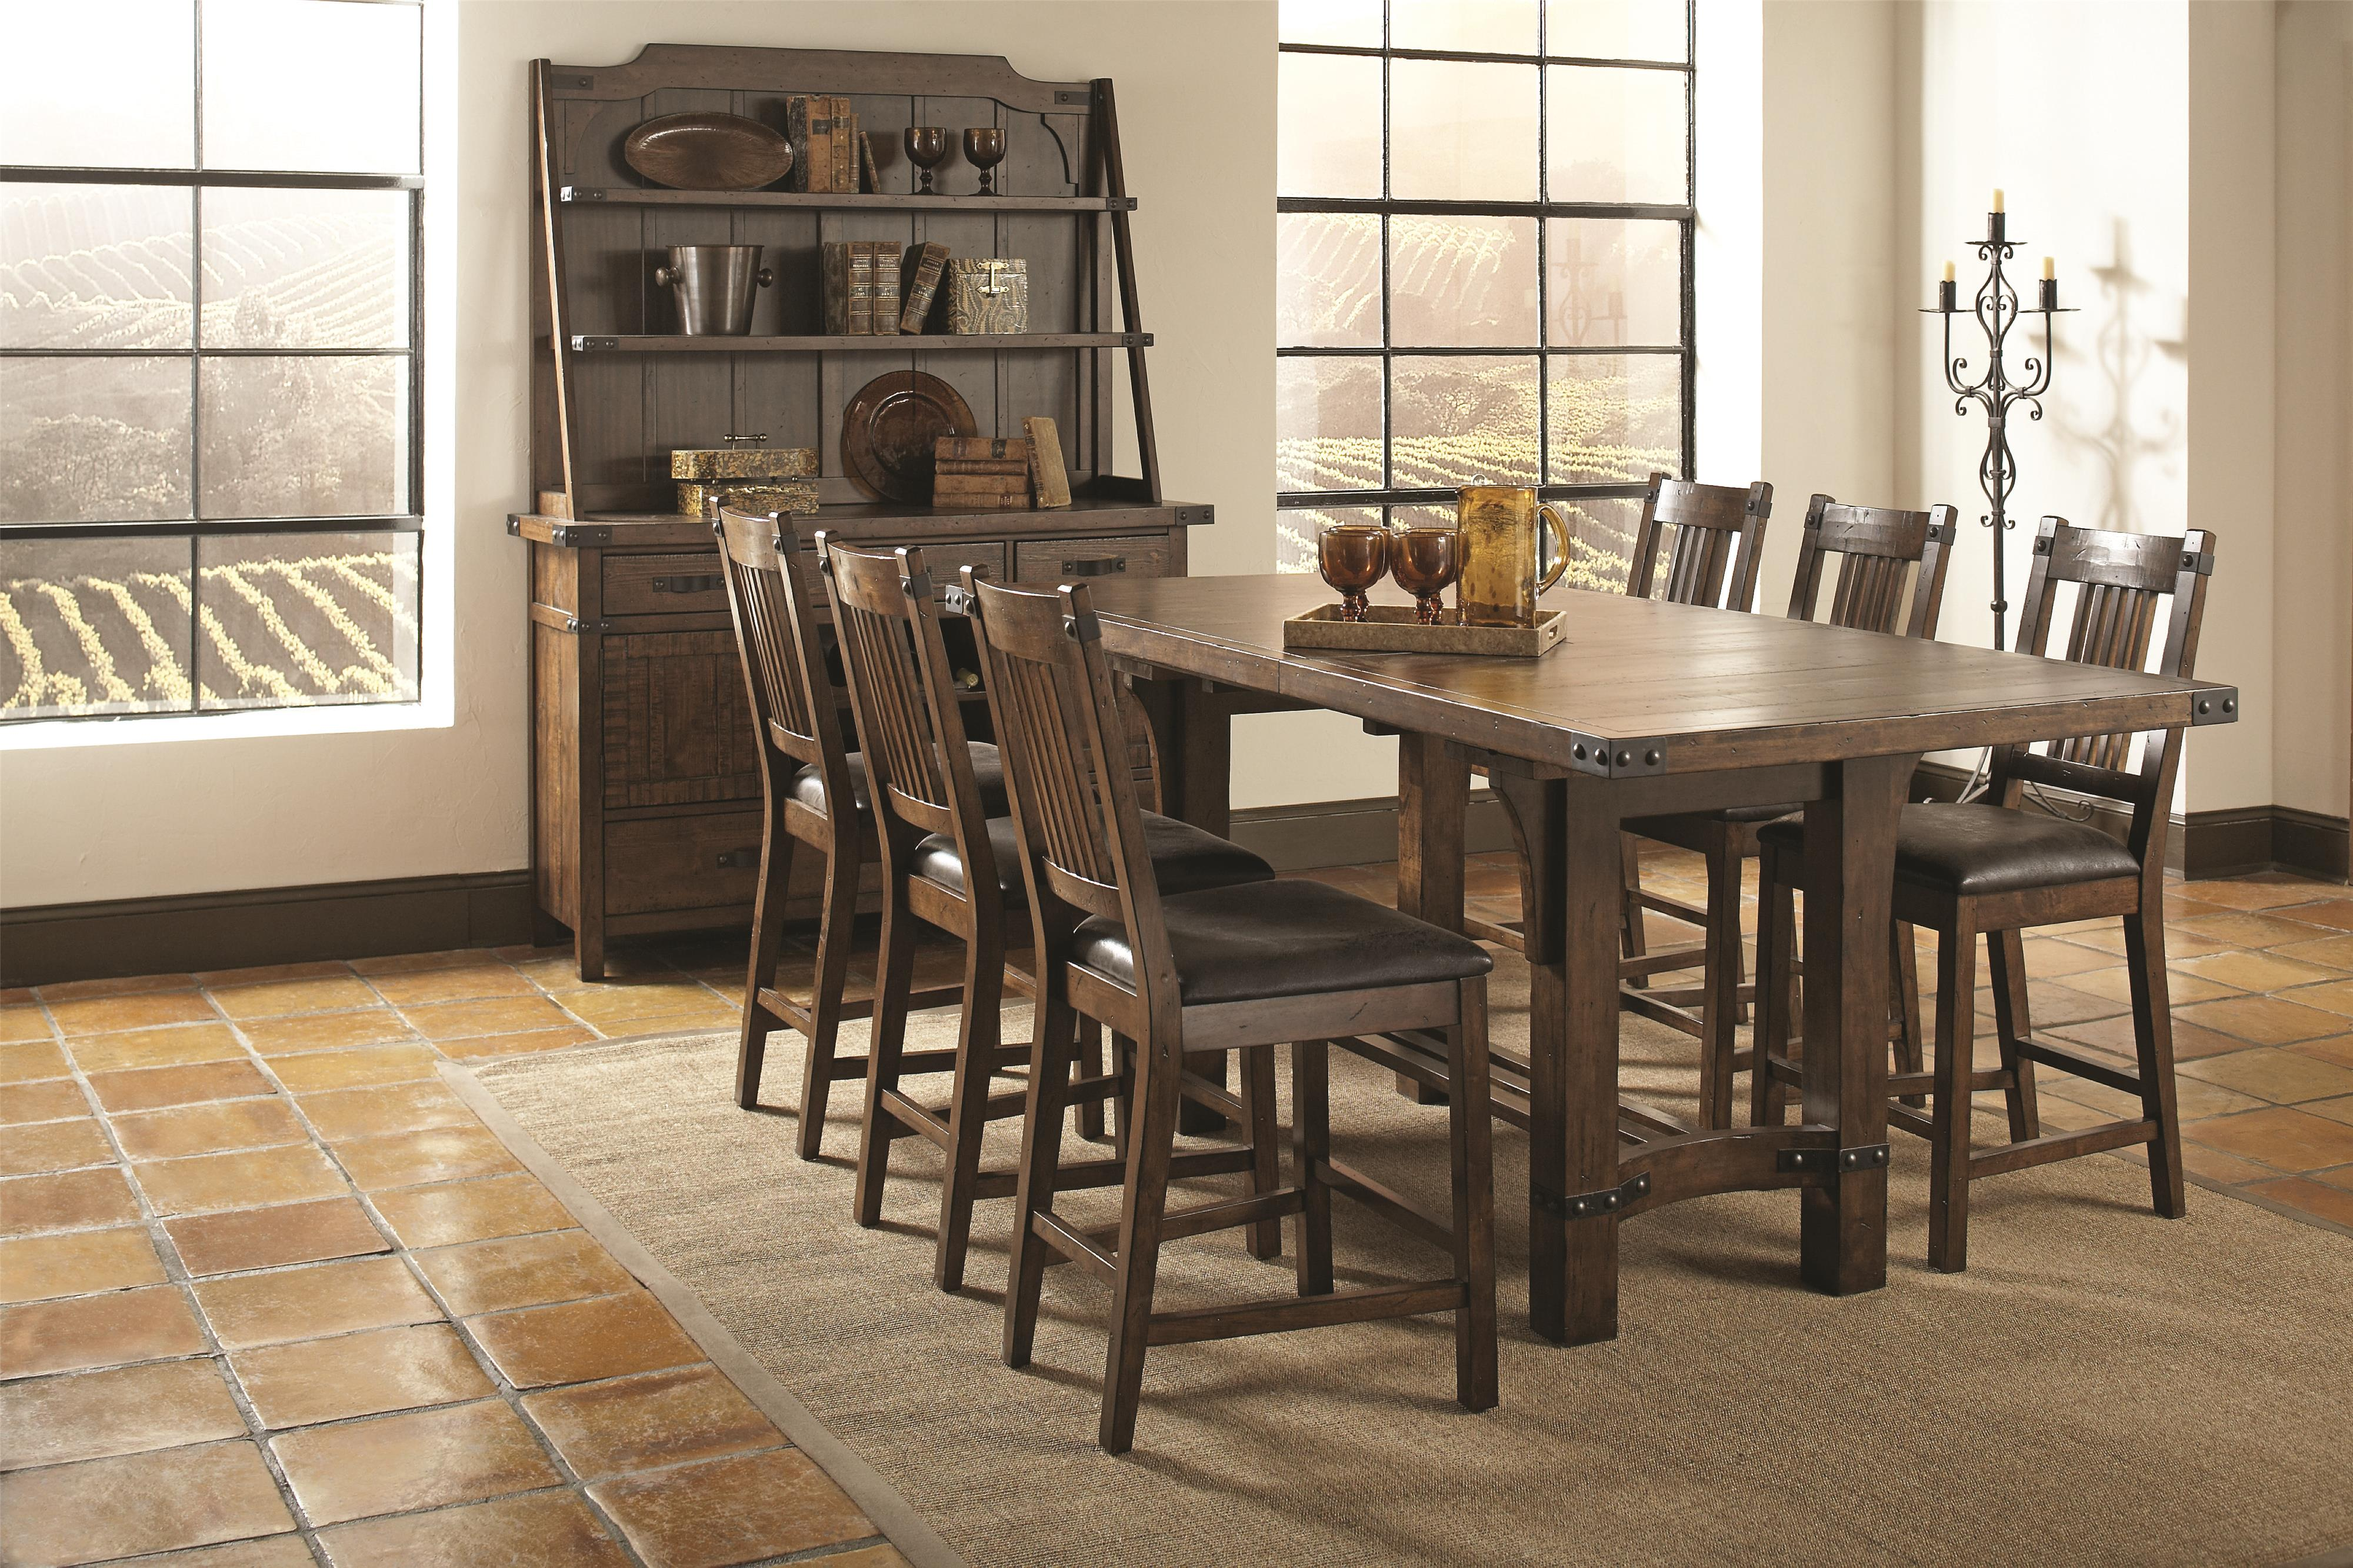 Padima 5 piece rustic counter height dining set Bana Home Decors